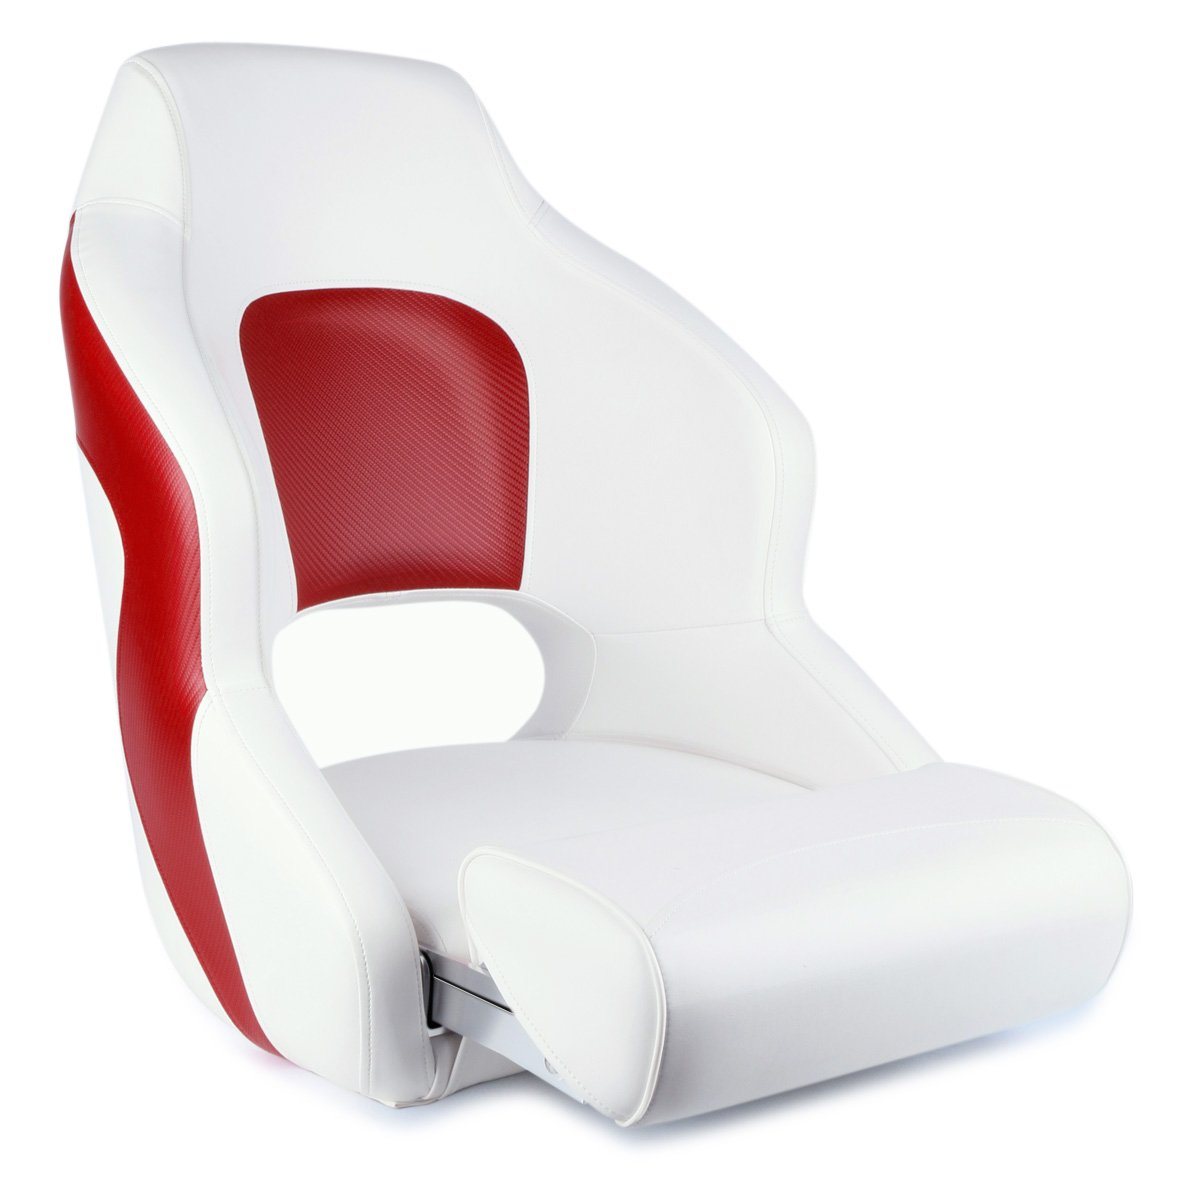 Leader Accessories Two Tone Captain's Bucket Seat Premium Sports Flip Up Boat Seat (White/Red)